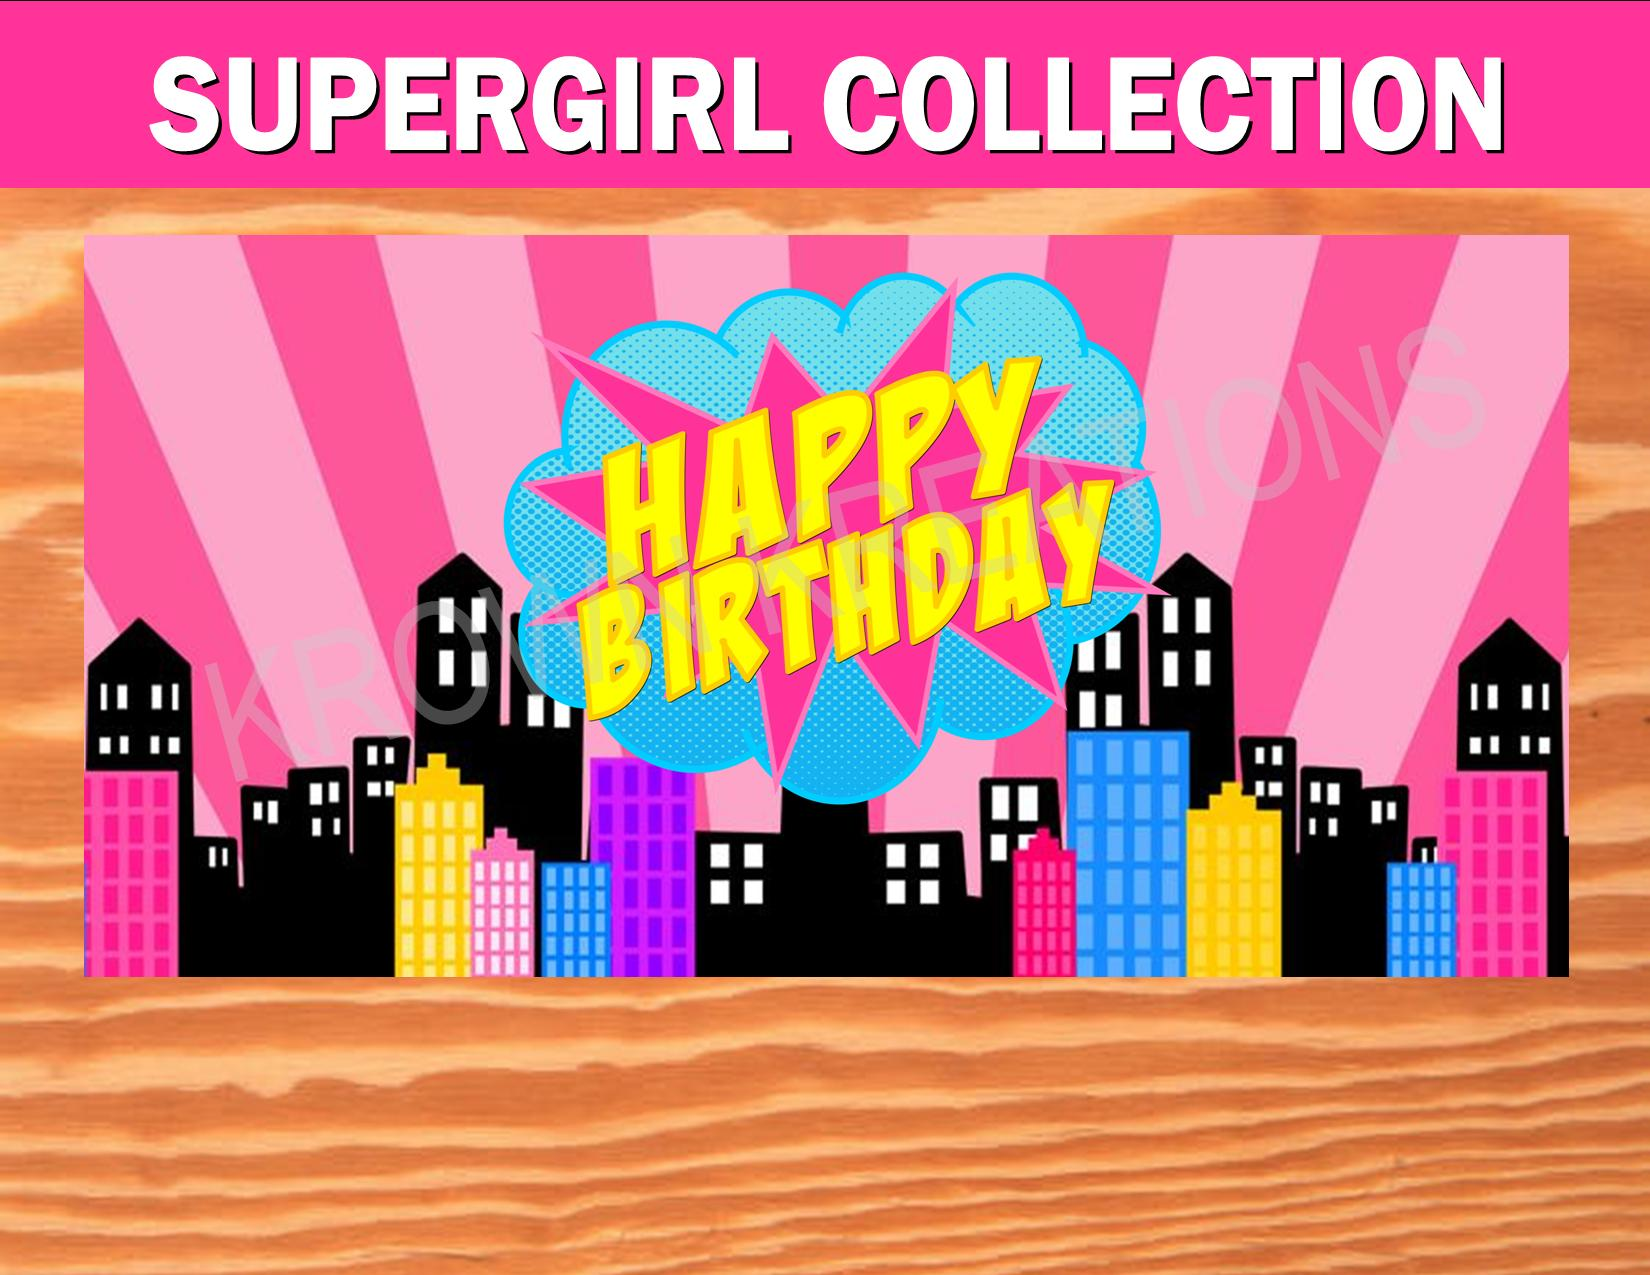 SUPERHERO PARTY - COMIC Party- CITYSCAPE- Superhero Birthday- Supergirl- Superhero BACKDROP